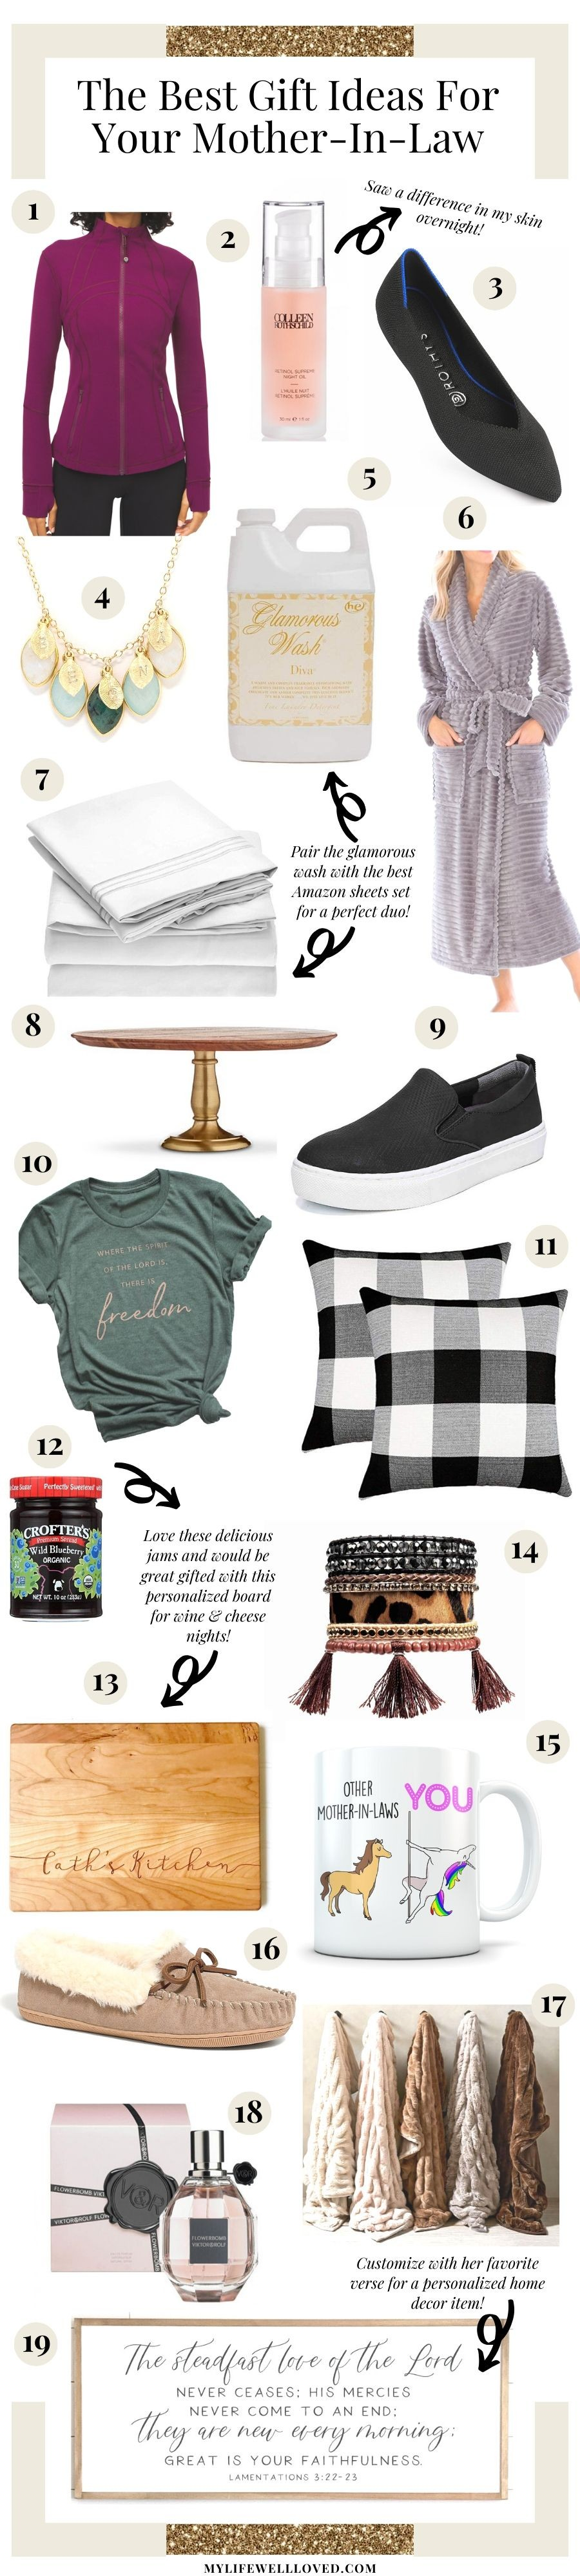 50 Gift Ideas For Mother In Law Or Sister In Law My Life